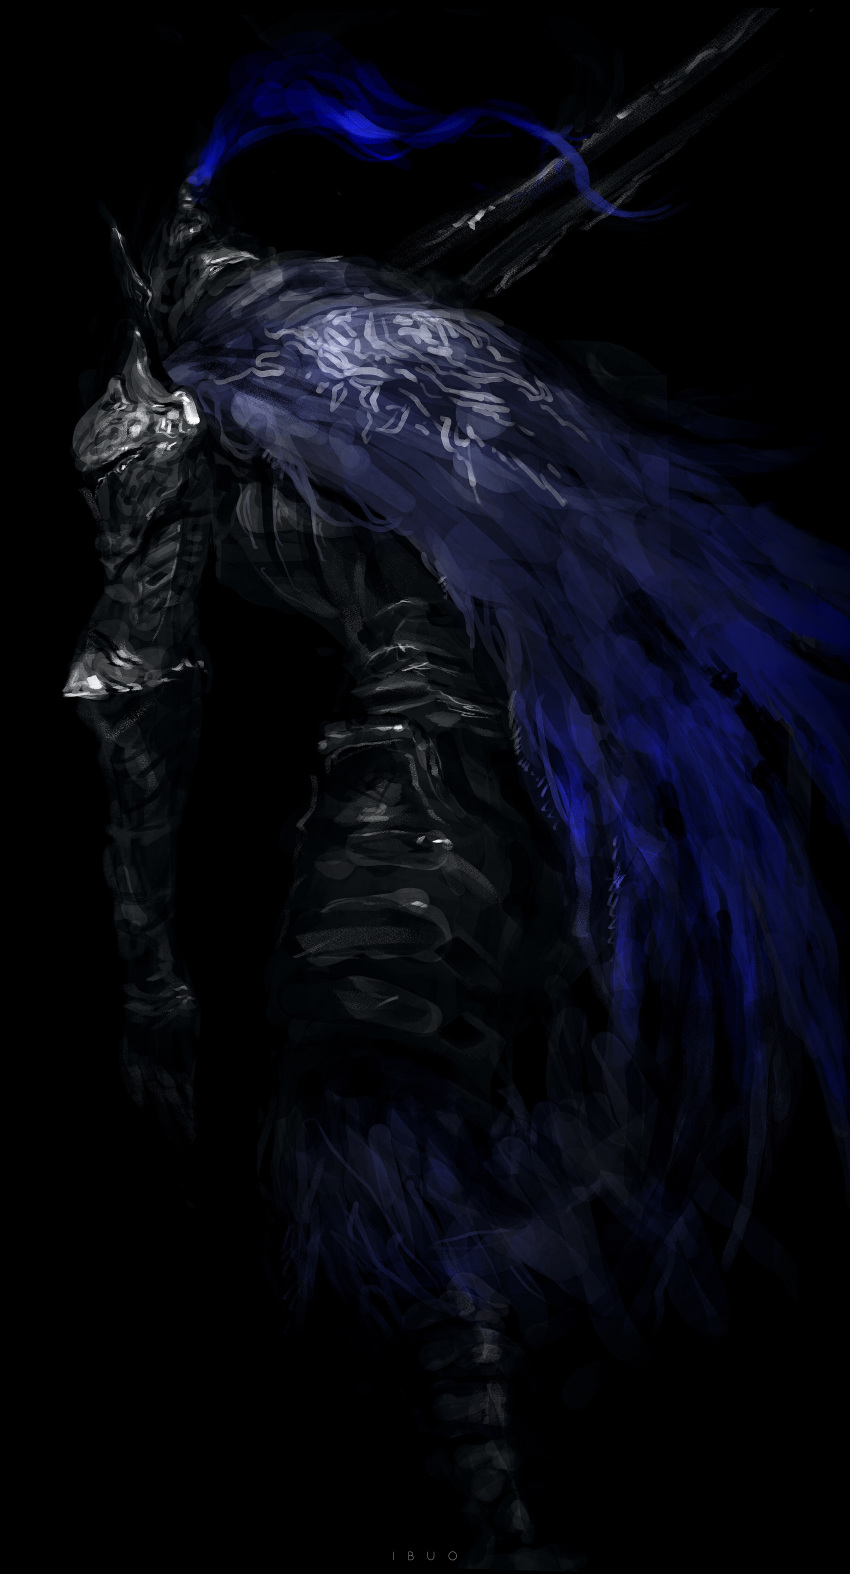 1boy absurdres arm_at_side armor armored_boots artist_name artorias_the_abysswalker black_background blue_cape boots breastplate cape dark dark_souls densen_(itoguchi) facing_away faulds full_armor full_body gauntlets greatsword helmet highres holding holding_sword holding_weapon knight leaning_forward male_focus over_shoulder pauldrons plate_armor plume shoulder_armor simple_background solo souls_(from_software) sword tattered_cape walking weapon